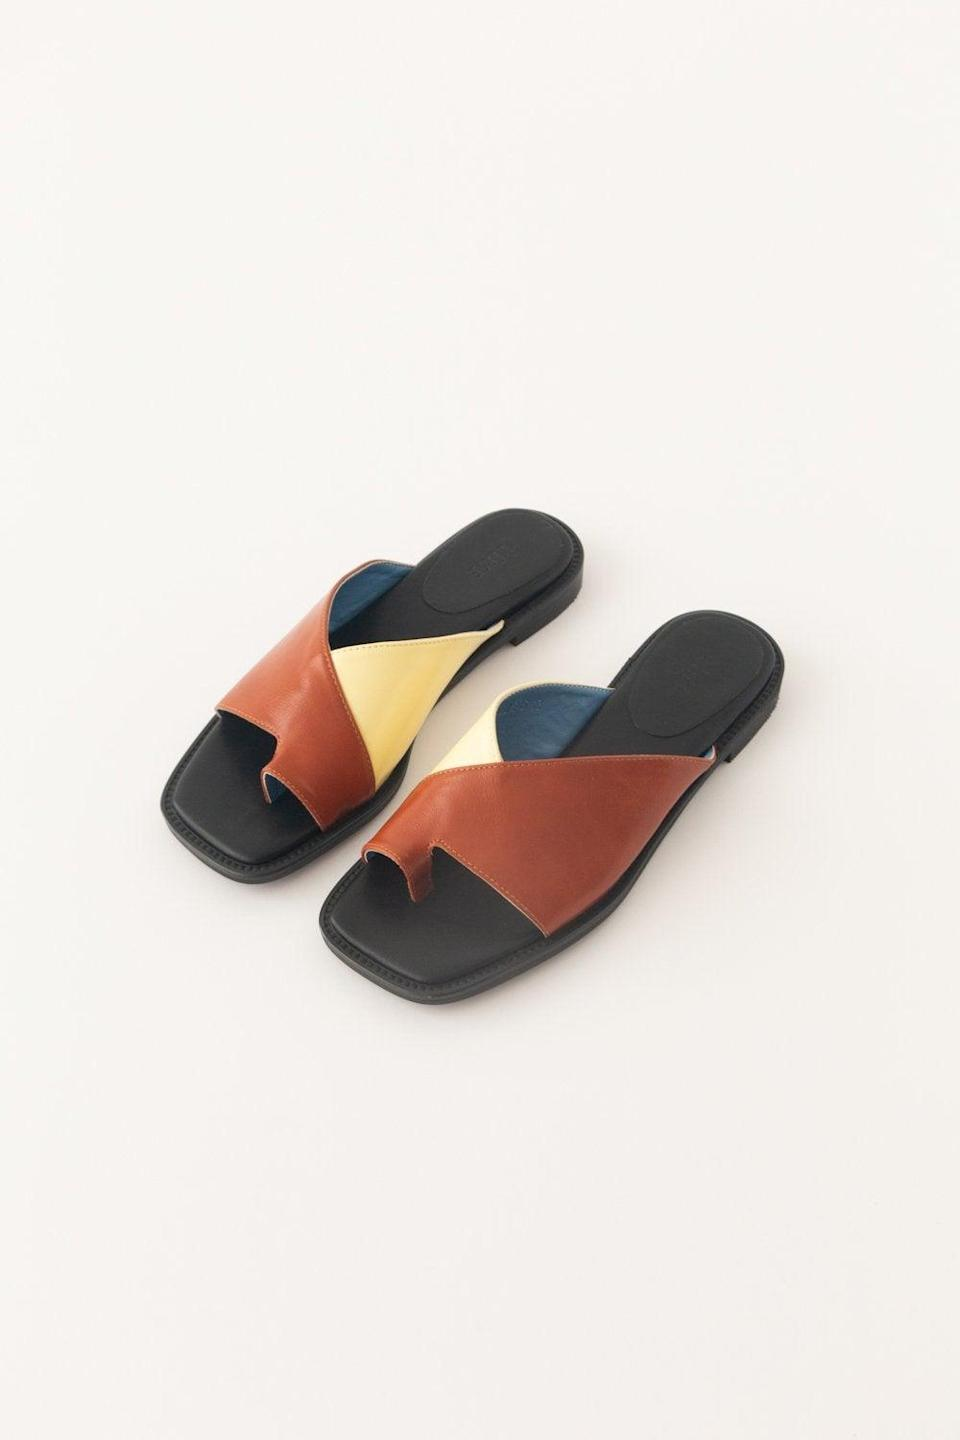 """We suggest pairing these under-$100 color-block sandals with vintage jeans and a white T-shirt. <br> <br> <strong>Pêche</strong> Talia, $, available at <a href=""""https://go.skimresources.com/?id=30283X879131&url=https%3A%2F%2Fshop-peche.com%2Fcollections%2Fshoes%2Fproducts%2Ftalia"""" rel=""""nofollow noopener"""" target=""""_blank"""" data-ylk=""""slk:Pêche"""" class=""""link rapid-noclick-resp"""">Pêche</a>"""